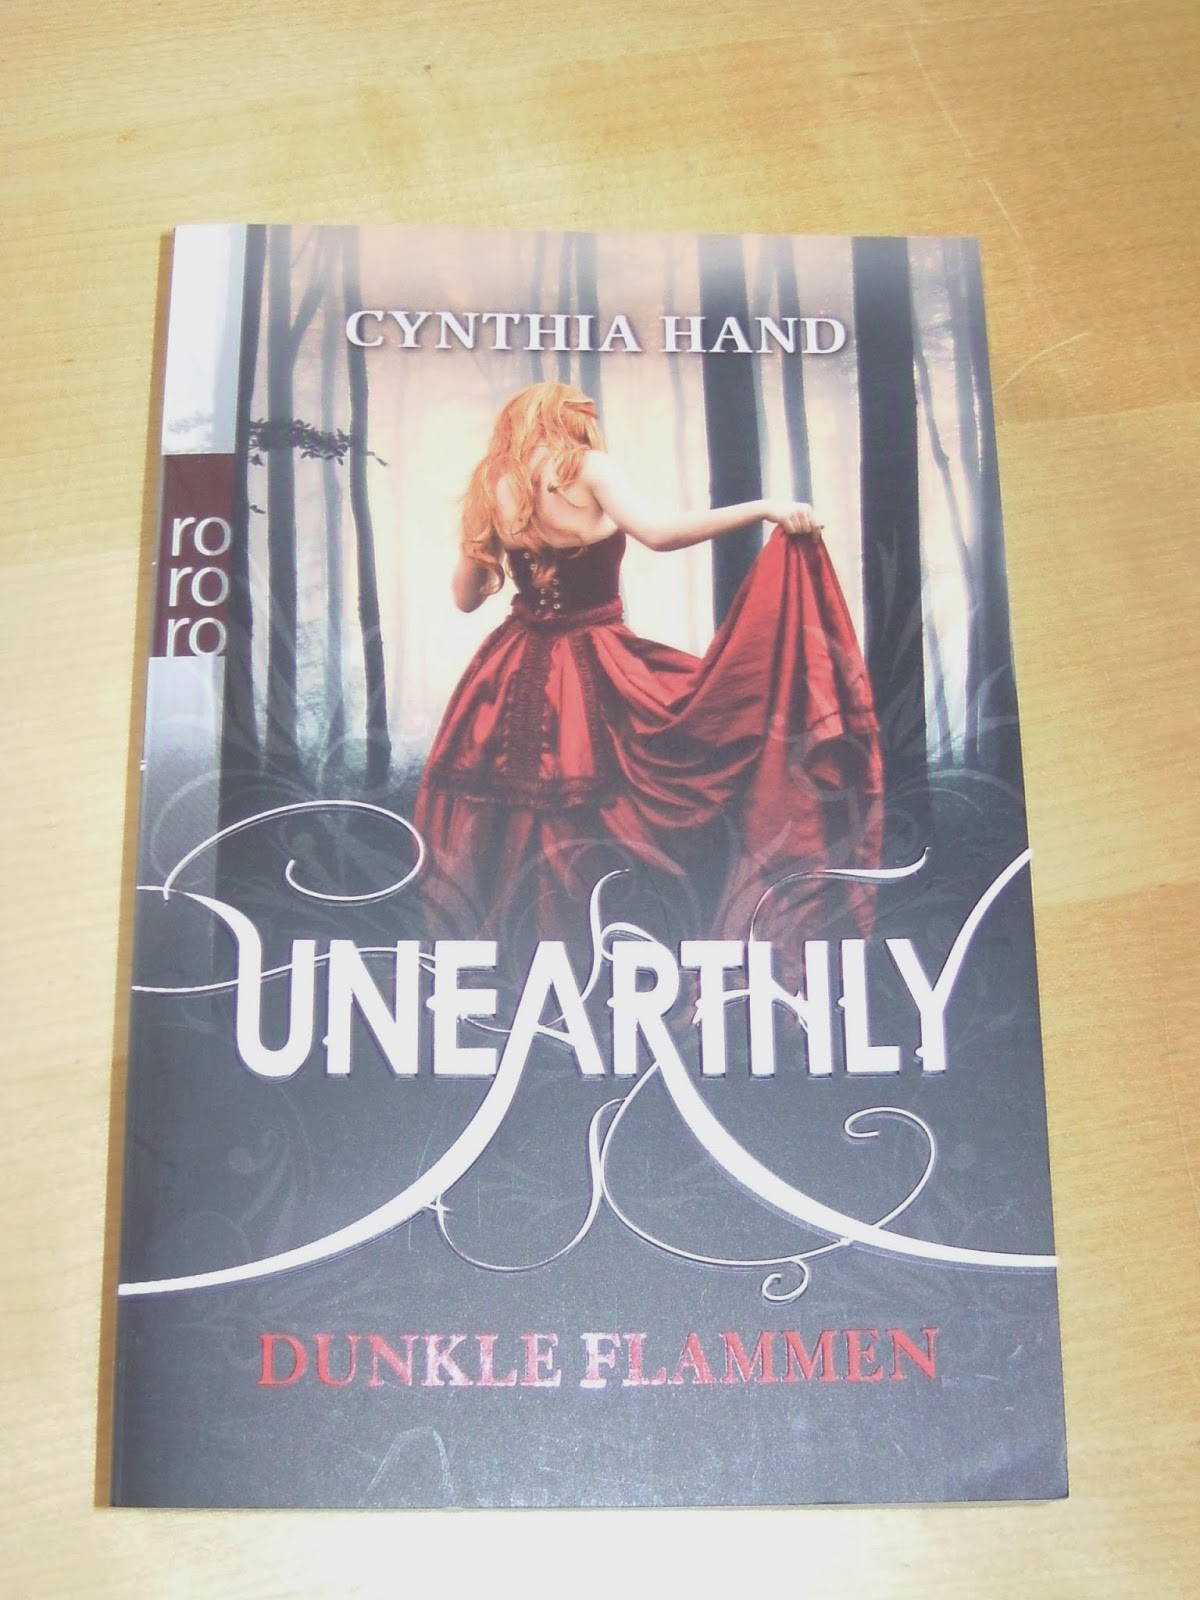 http://www.amazon.de/Unearthly-Dunkle-Flammen-Cynthia-Hand/dp/3499256983/ref=sr_1_1?s=books&ie=UTF8&qid=1393446533&sr=1-1&keywords=unearthly.+dunkle+flammen